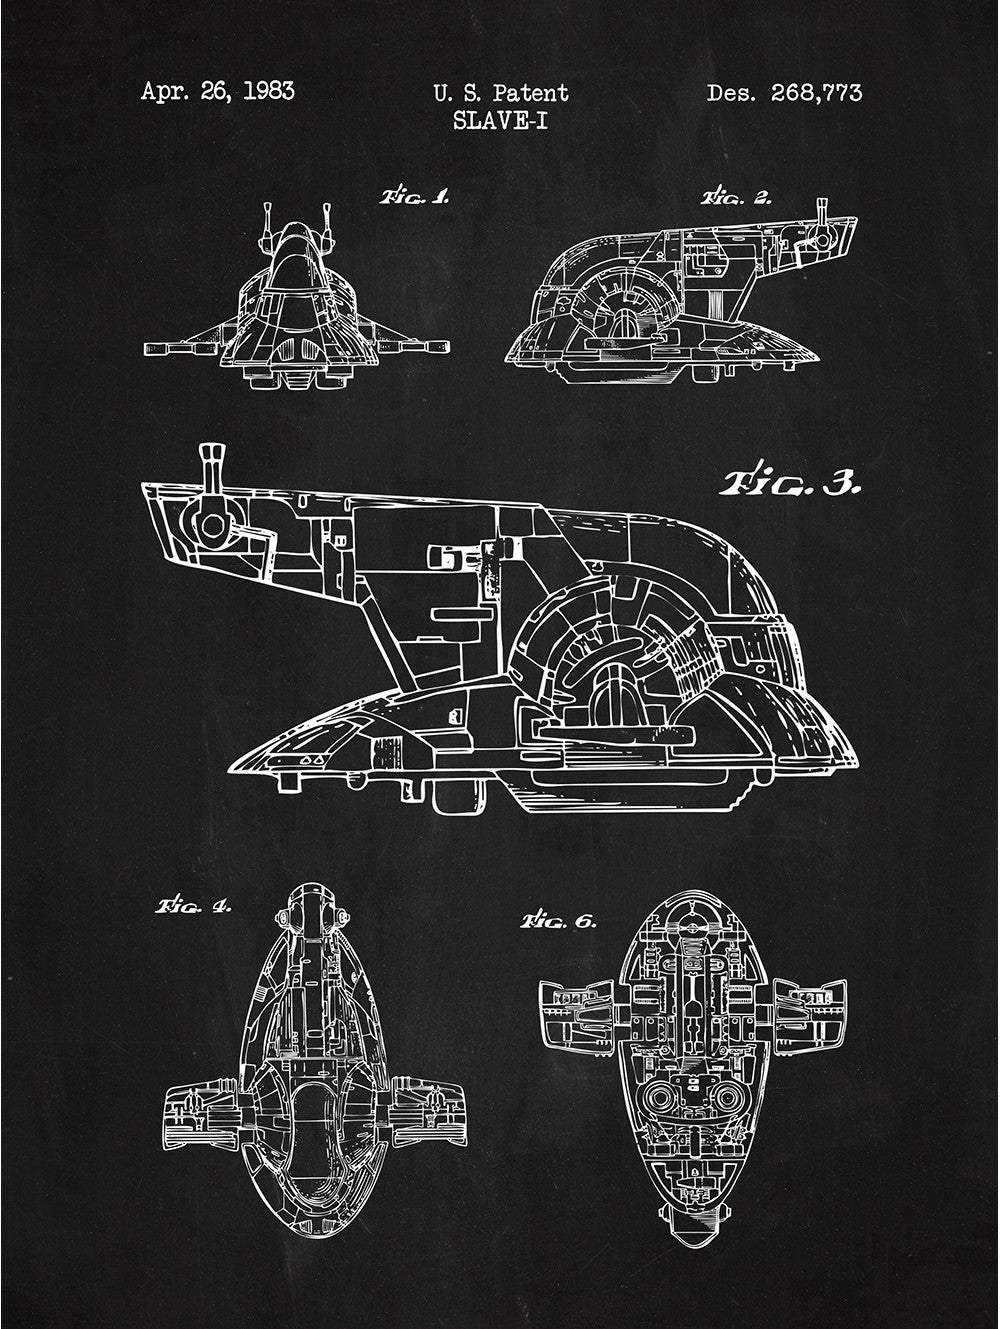 (U20) - Star Wars Vehicles: Slave-I